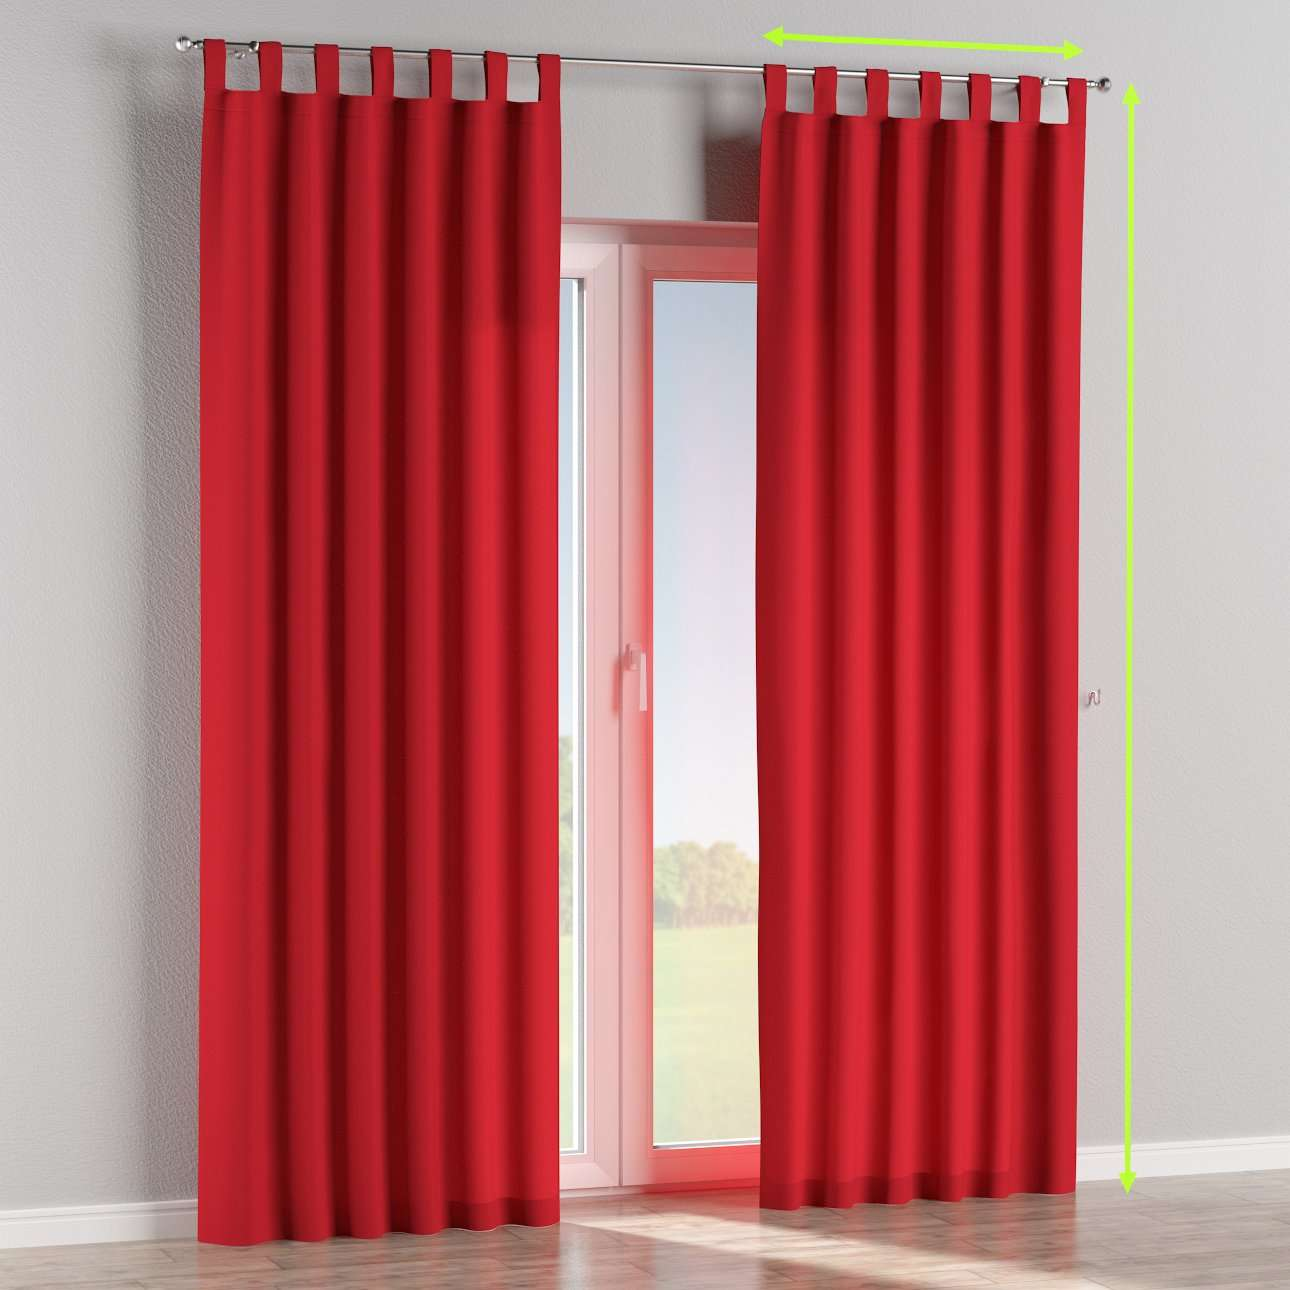 Tab top lined curtains in collection Cotton Panama, fabric: 702-04